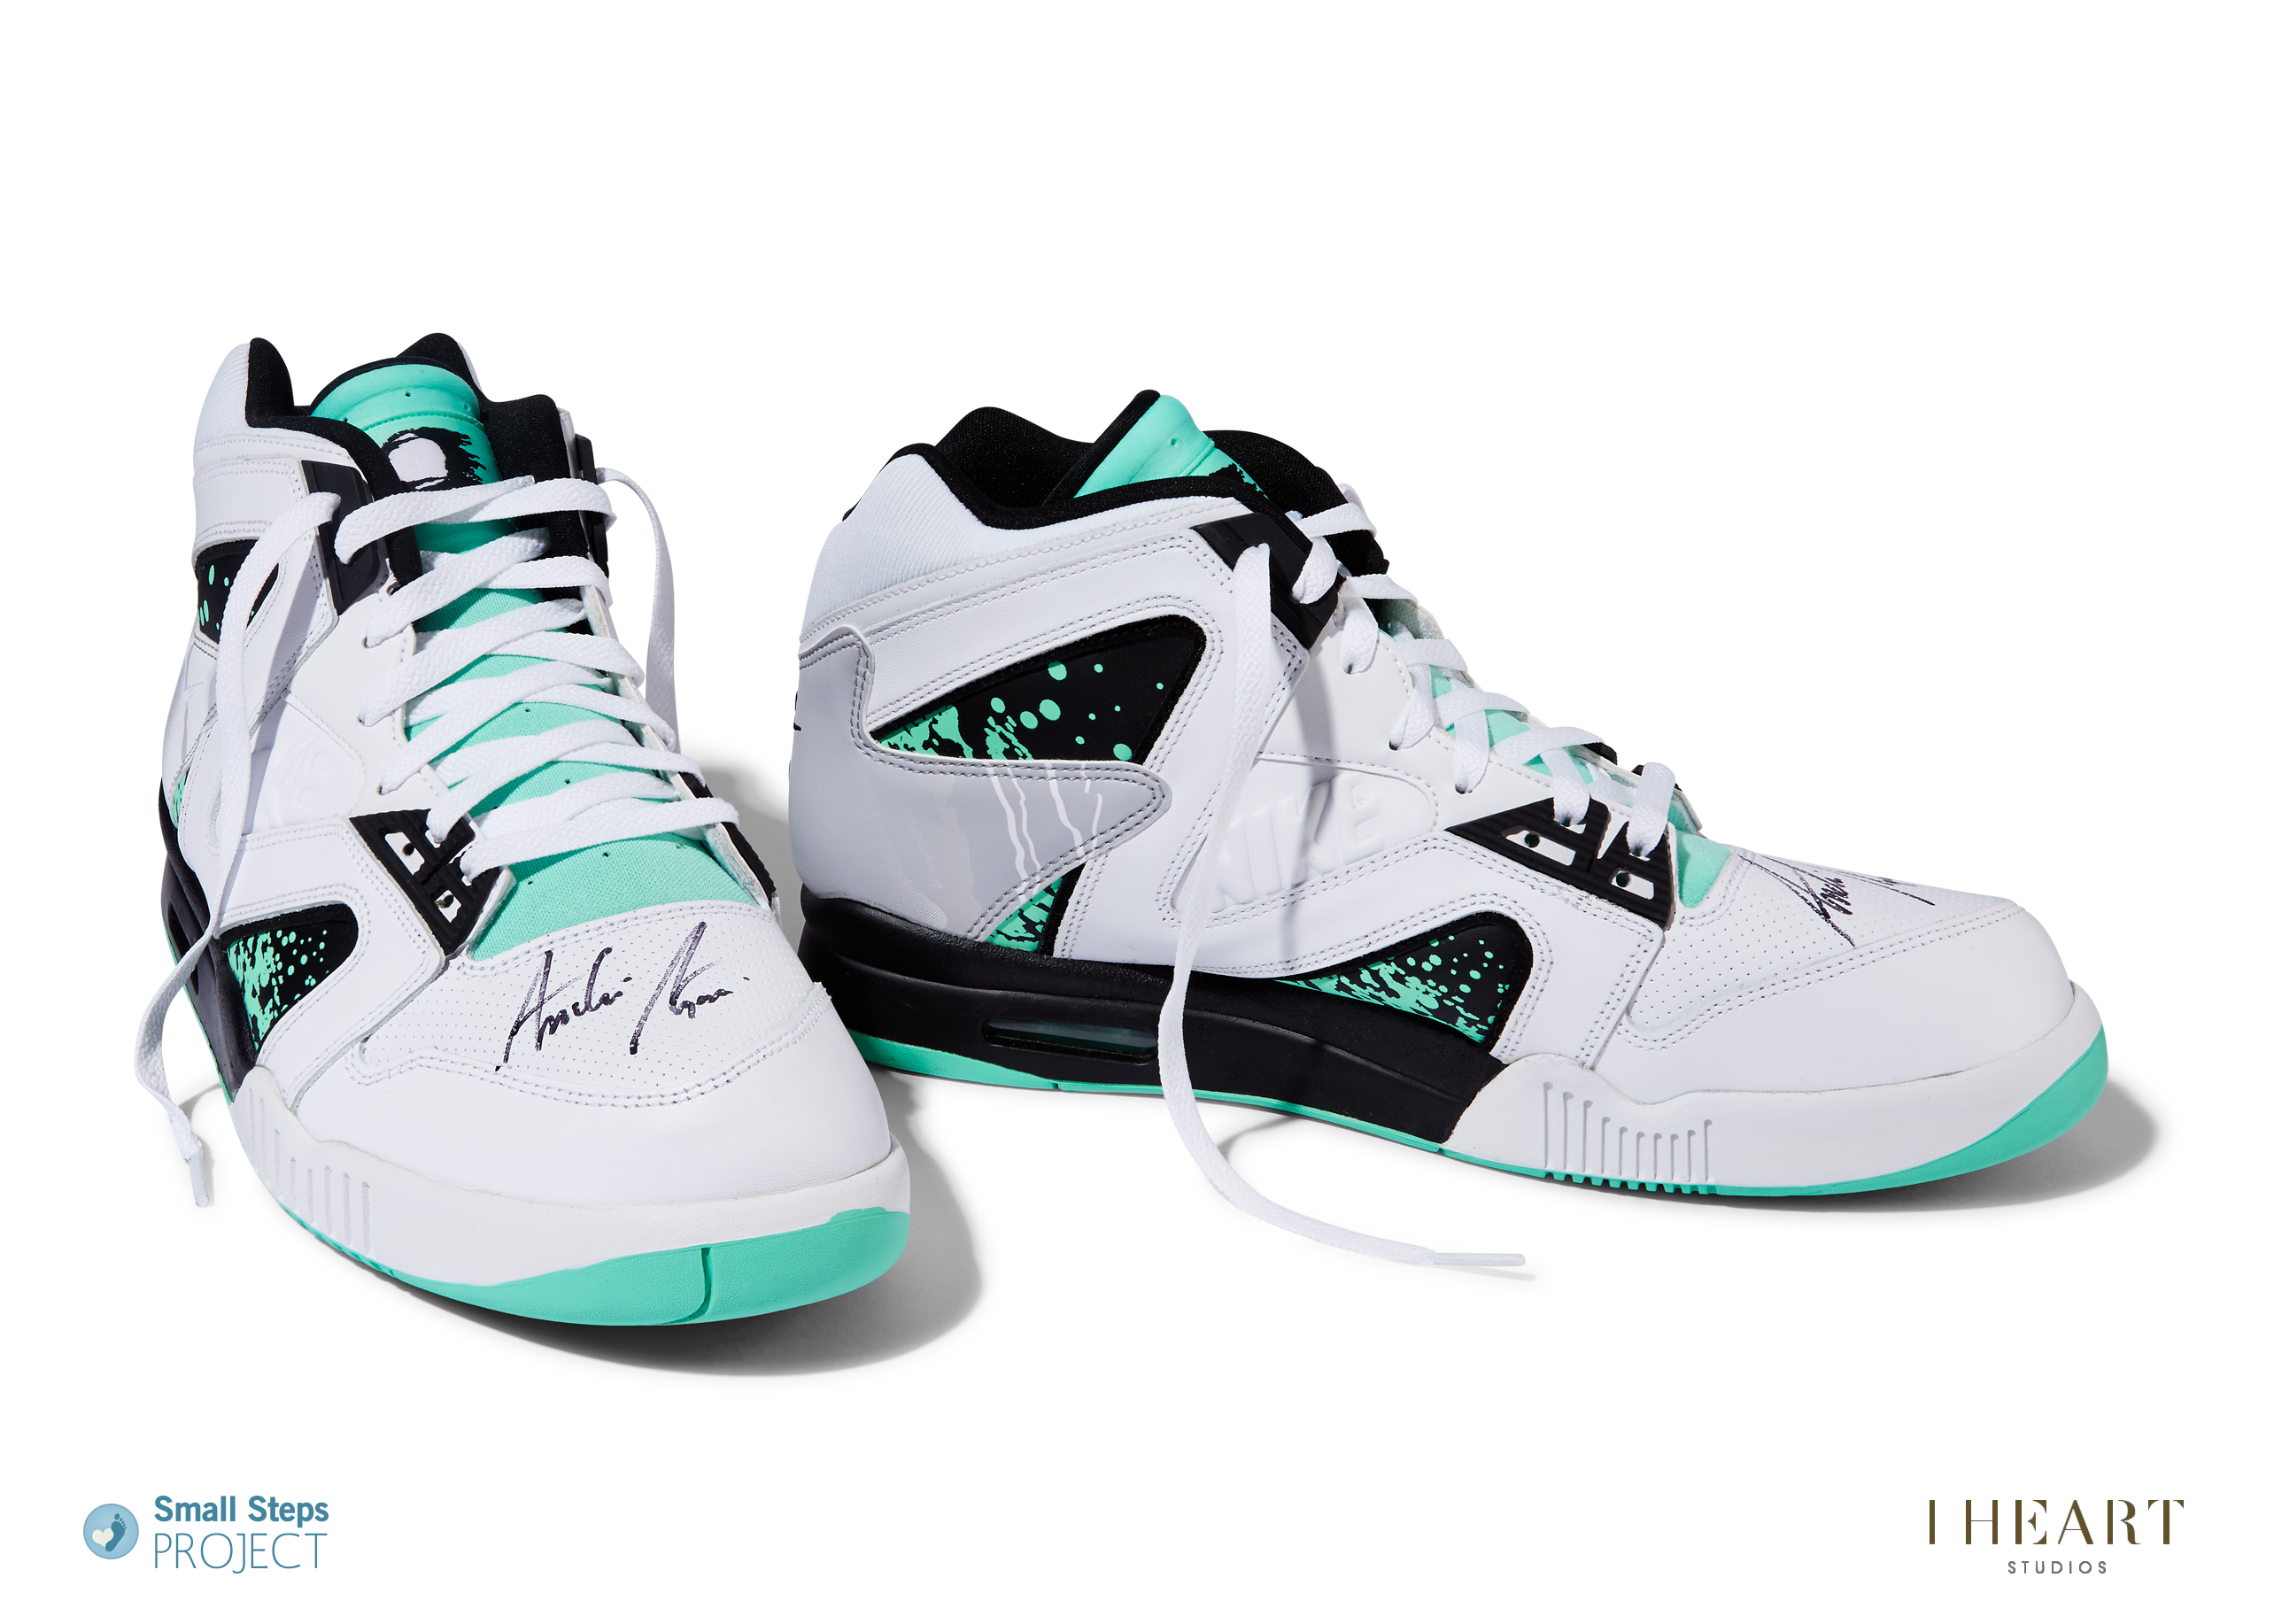 ef54930cbcc Related Post from Andre Agassi Shoes Nike Air Flare Another Look Source · Andre  Agassi Small Steps Project